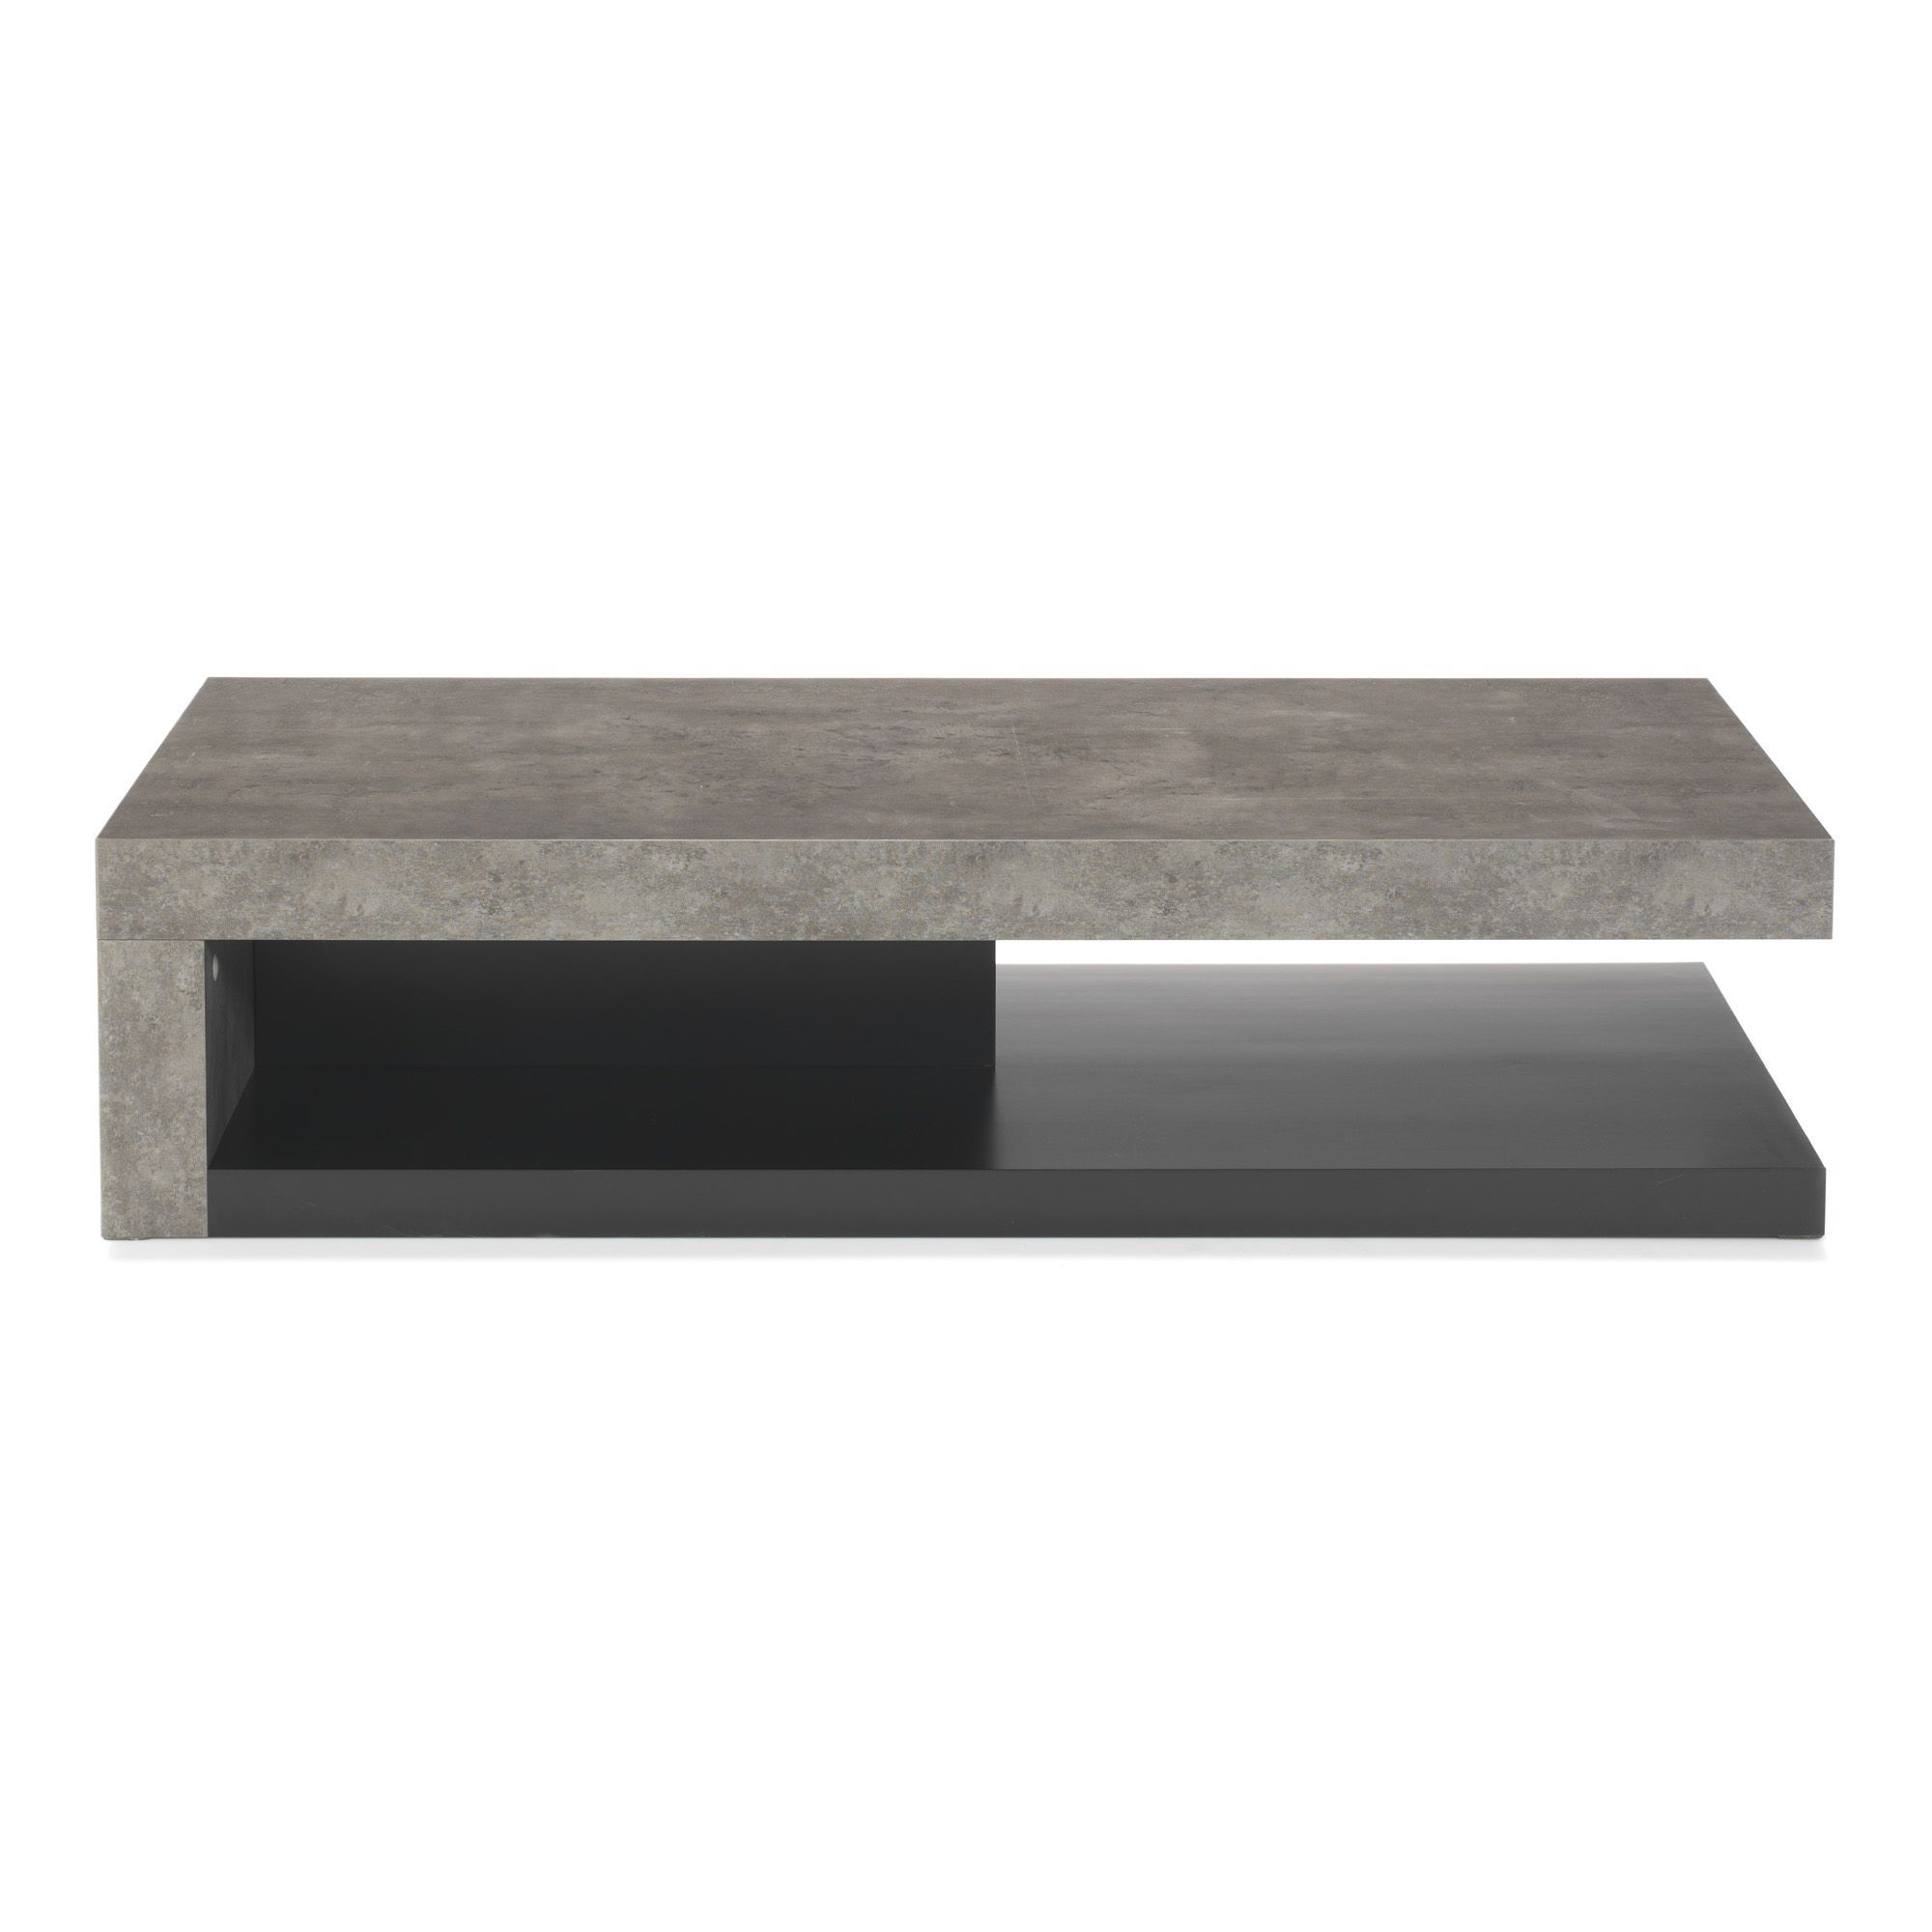 table basse effet b ton gris et noir hilo les tables. Black Bedroom Furniture Sets. Home Design Ideas